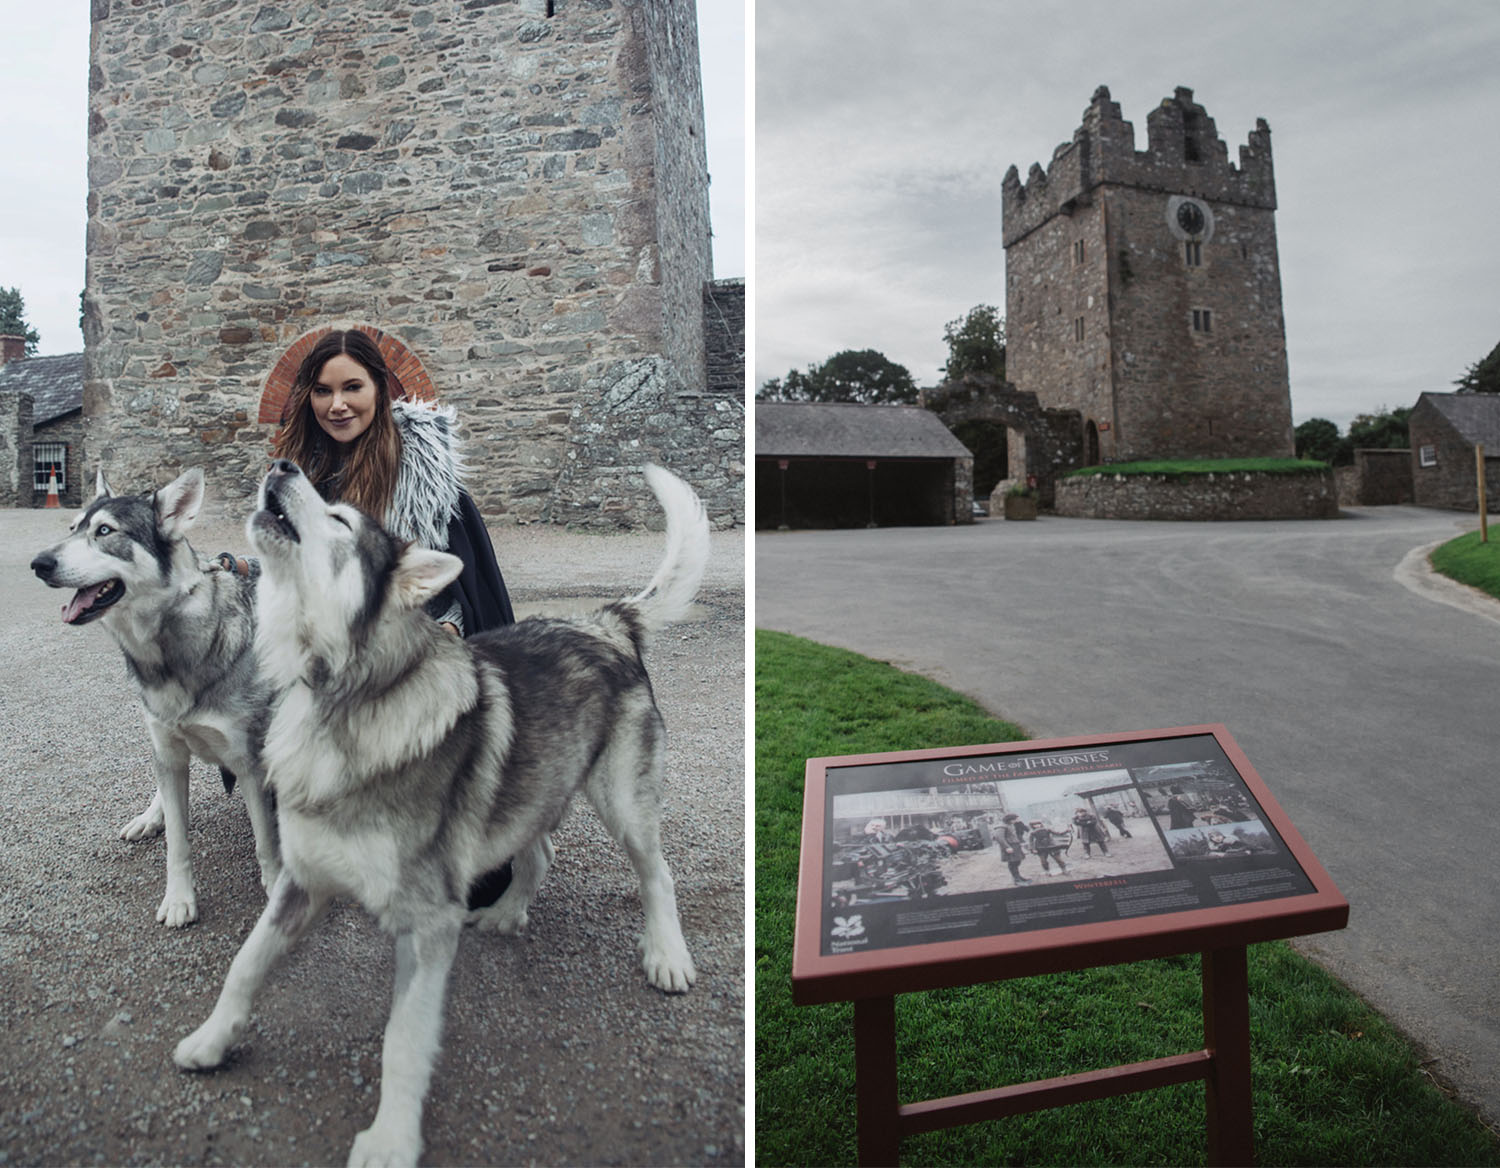 Meet the direwolves in Winterfell - Castle Ward